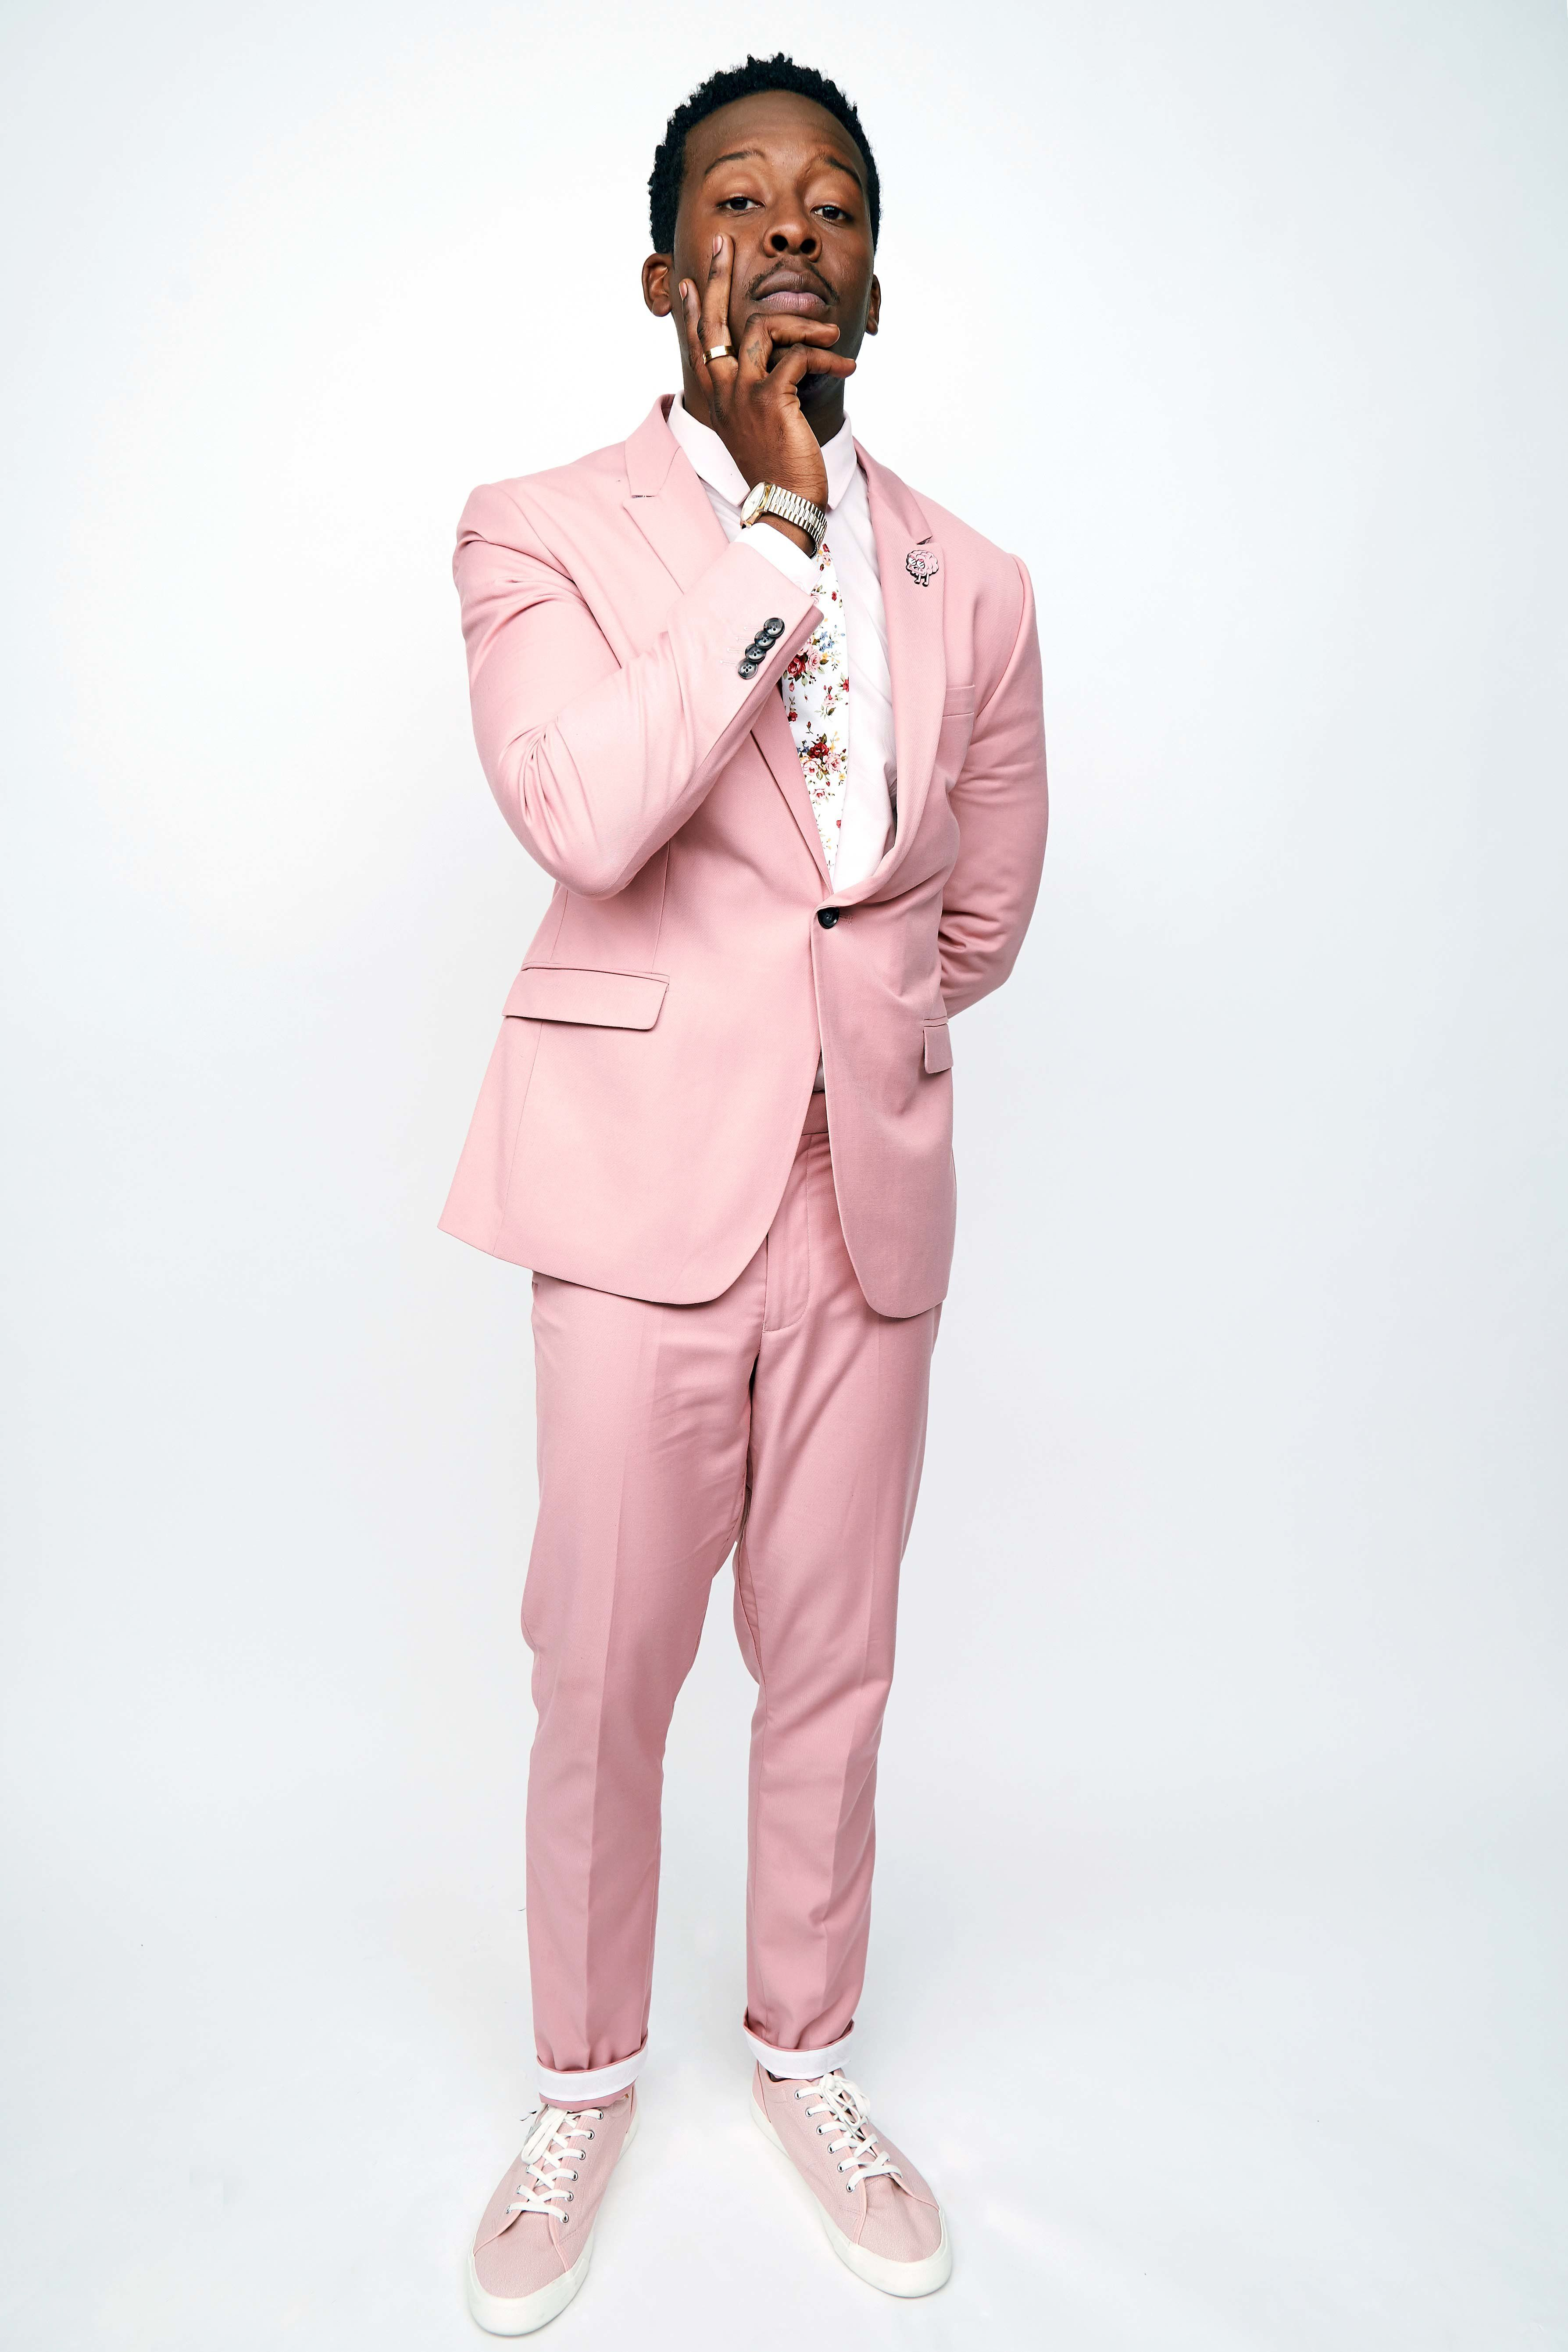 Actor Brandon Micheal Hall in a pink suit.